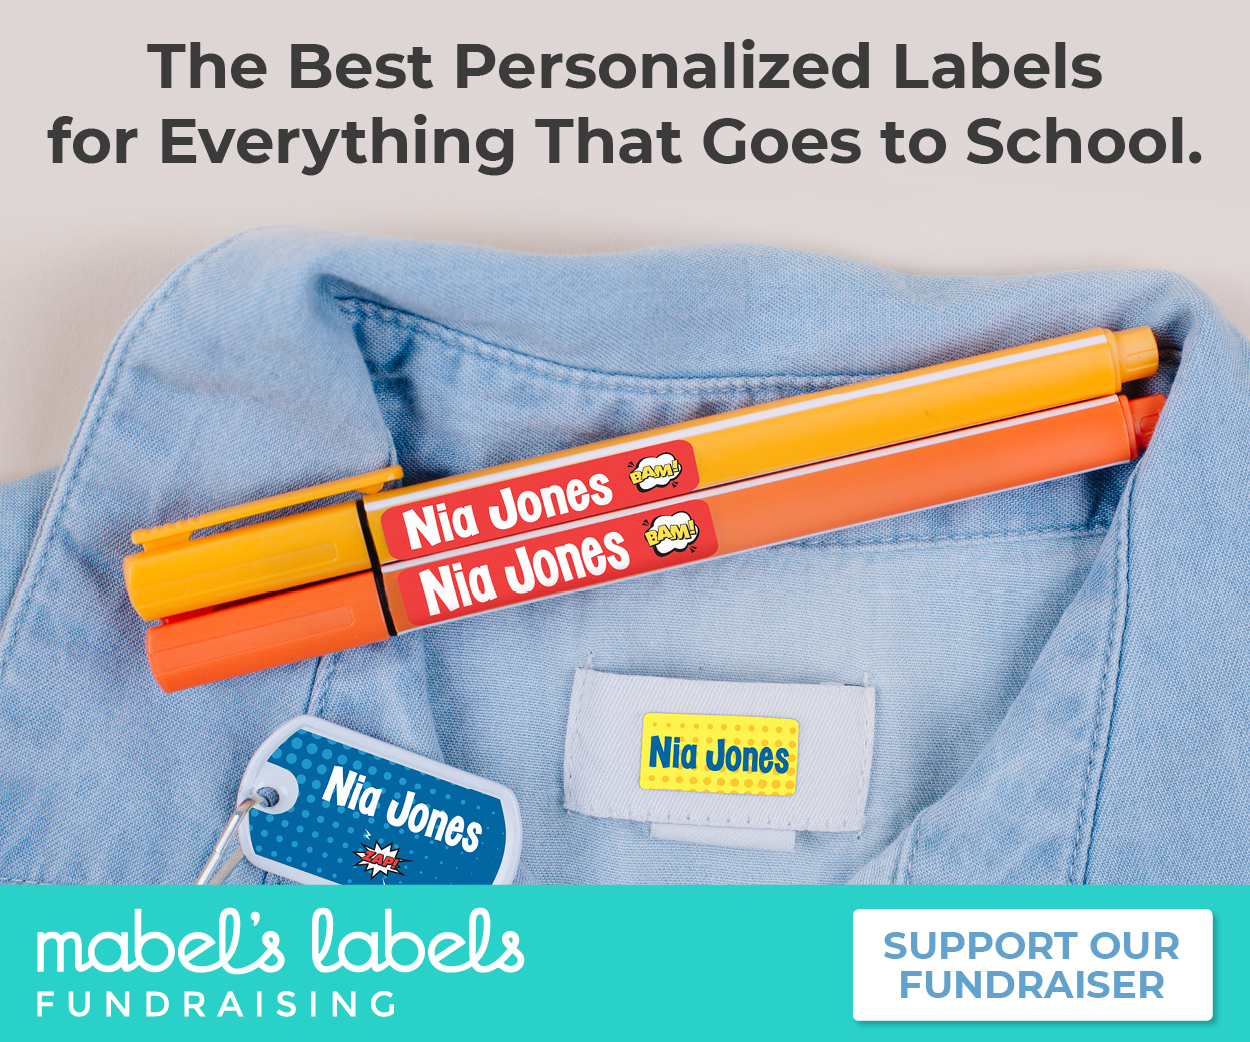 Personalized Labels Social Image.jpg